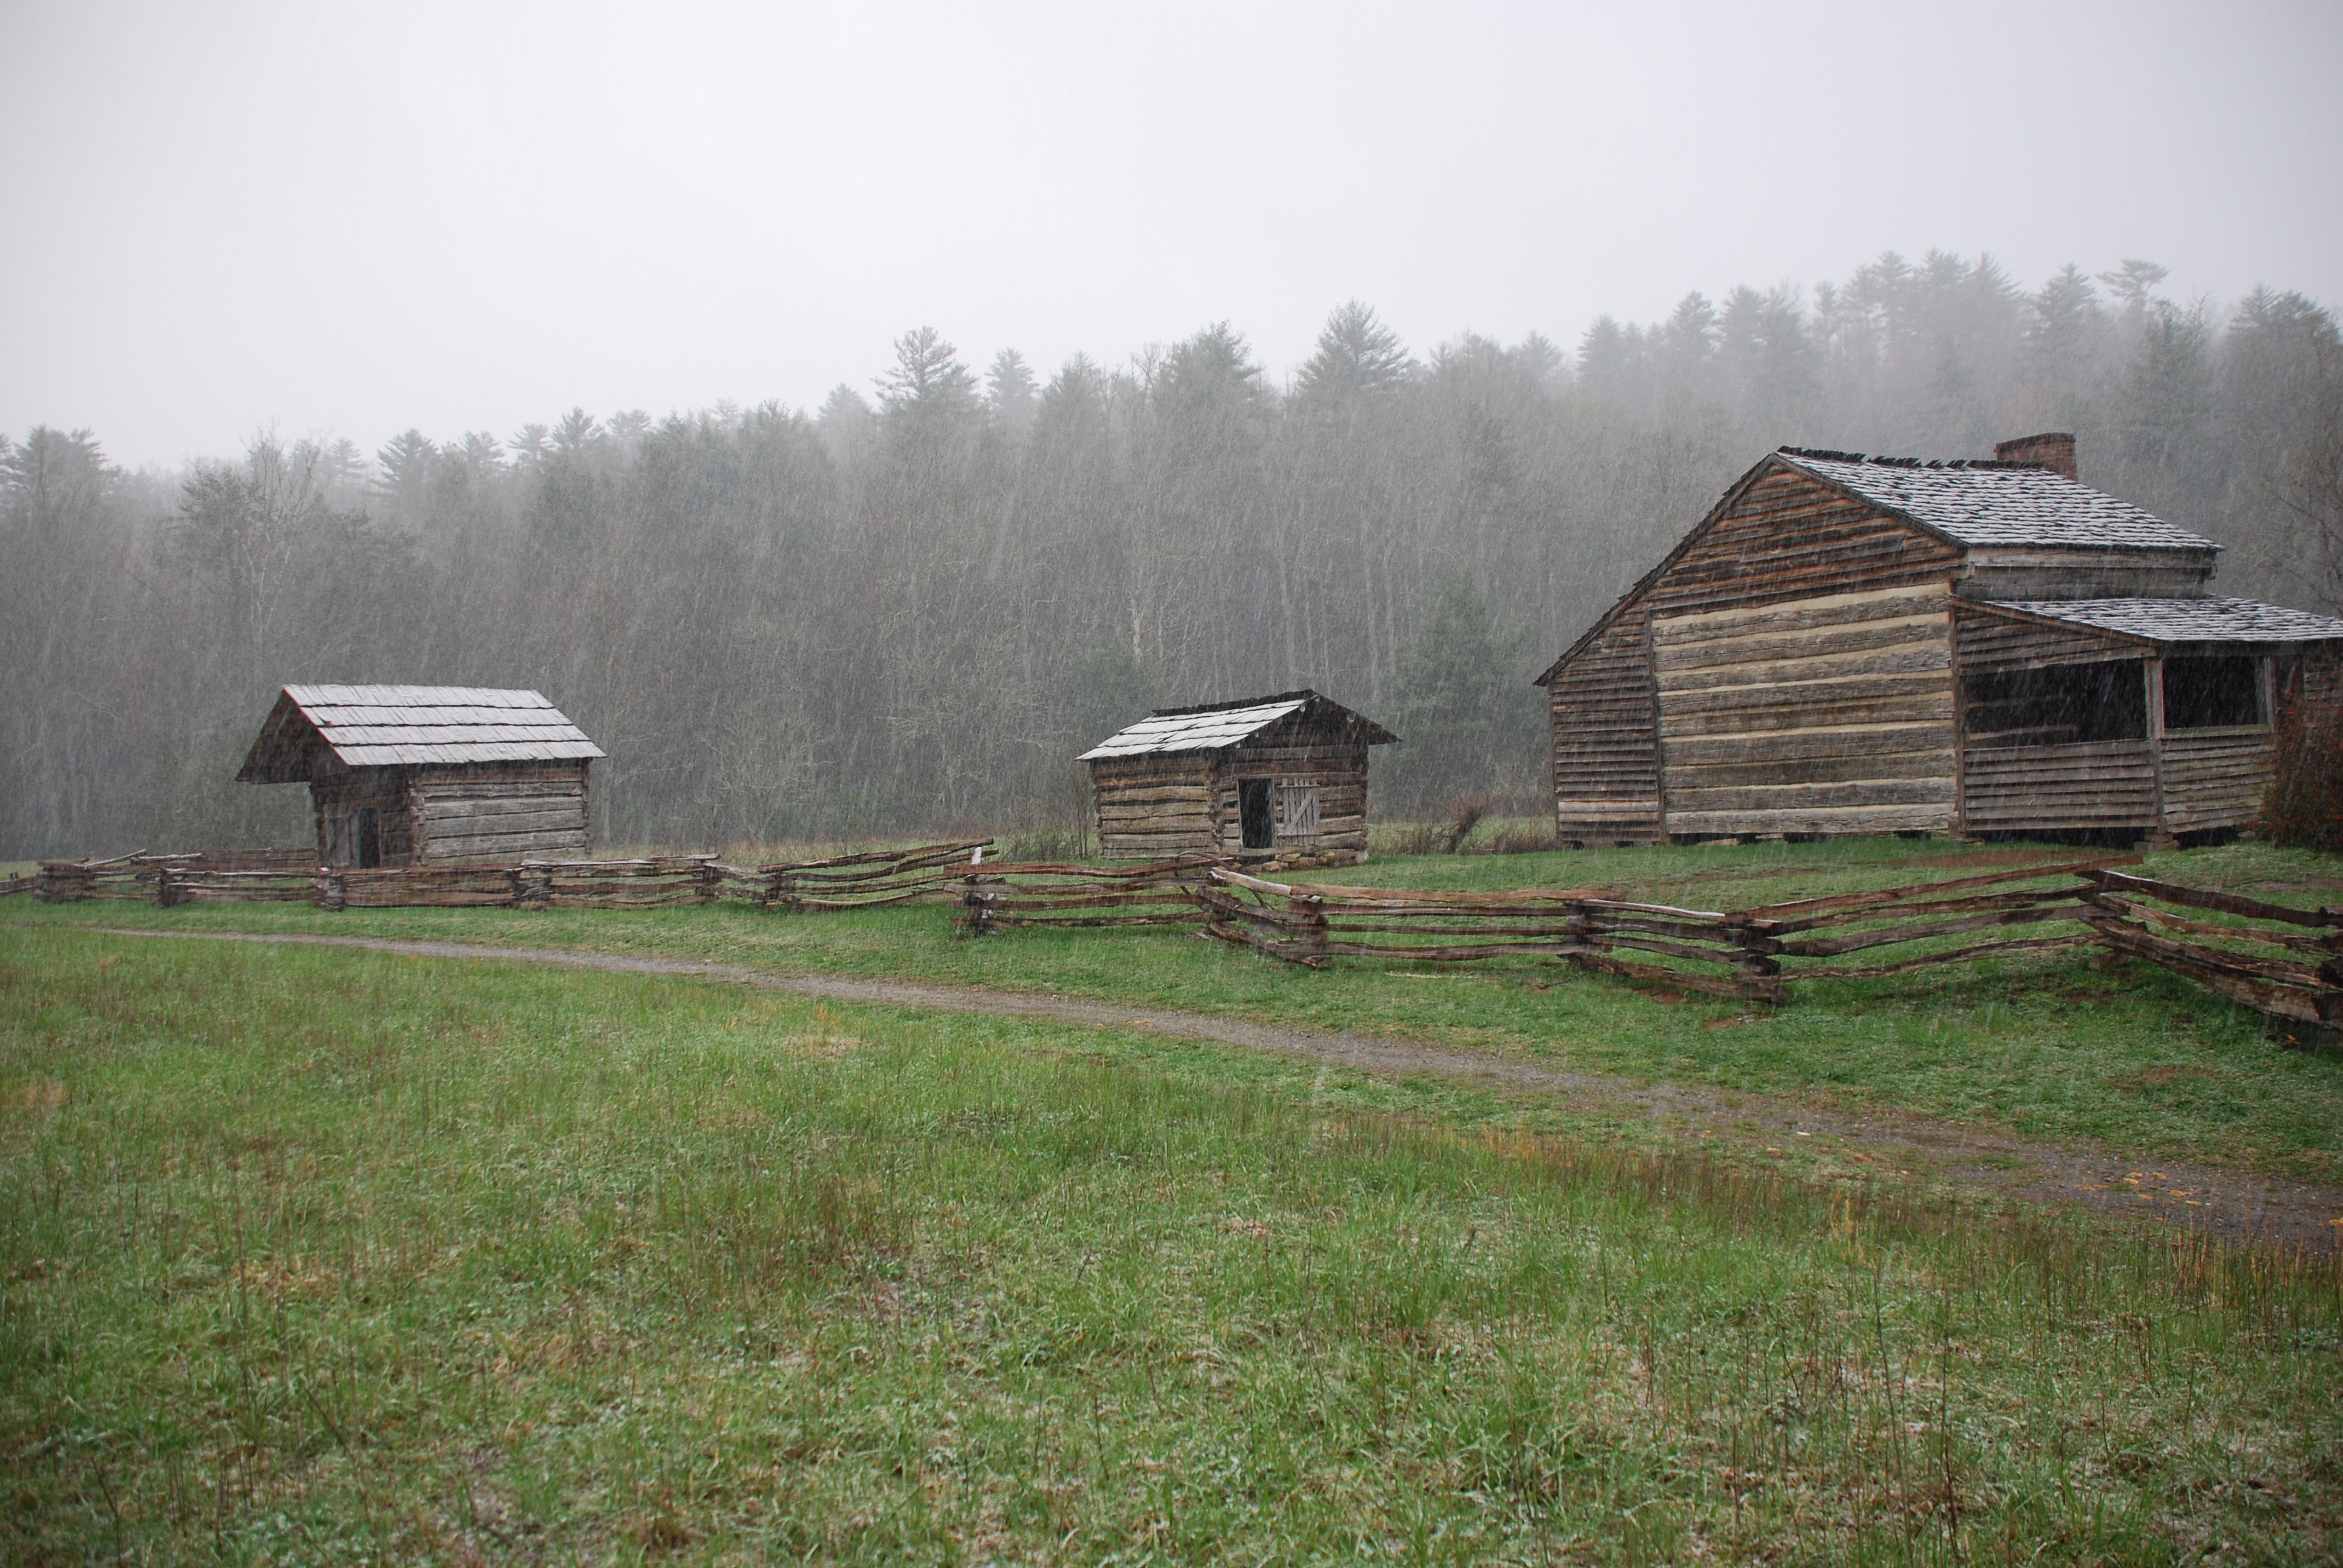 The Dan Lawson Place in Cades Cove, GSMNP, in East Tennessee. The cabin was built by Peter Cable, and inherited by Dan Lawson after he married Cable's daughter. Photo taken on April 6, 2009.